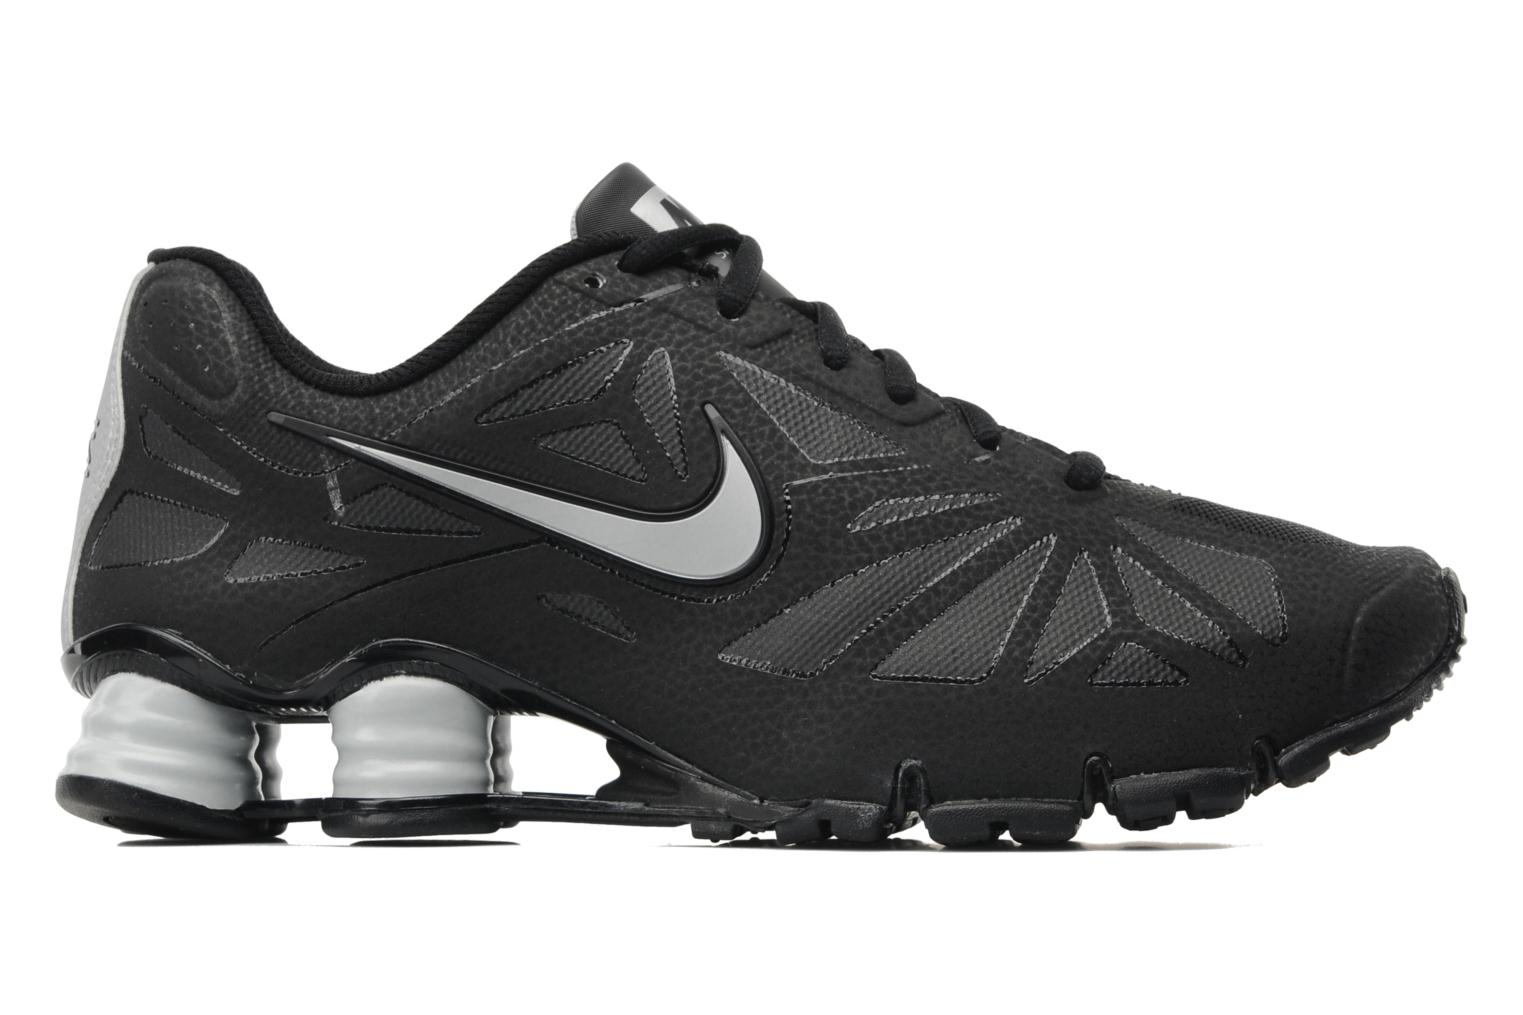 Product air max 90 men s. Your shopping cart is empty. Save mens product  shox size 14 to get e-mail alerts nike shox for men and updates on your  sevilla.org ... c6788cc9a